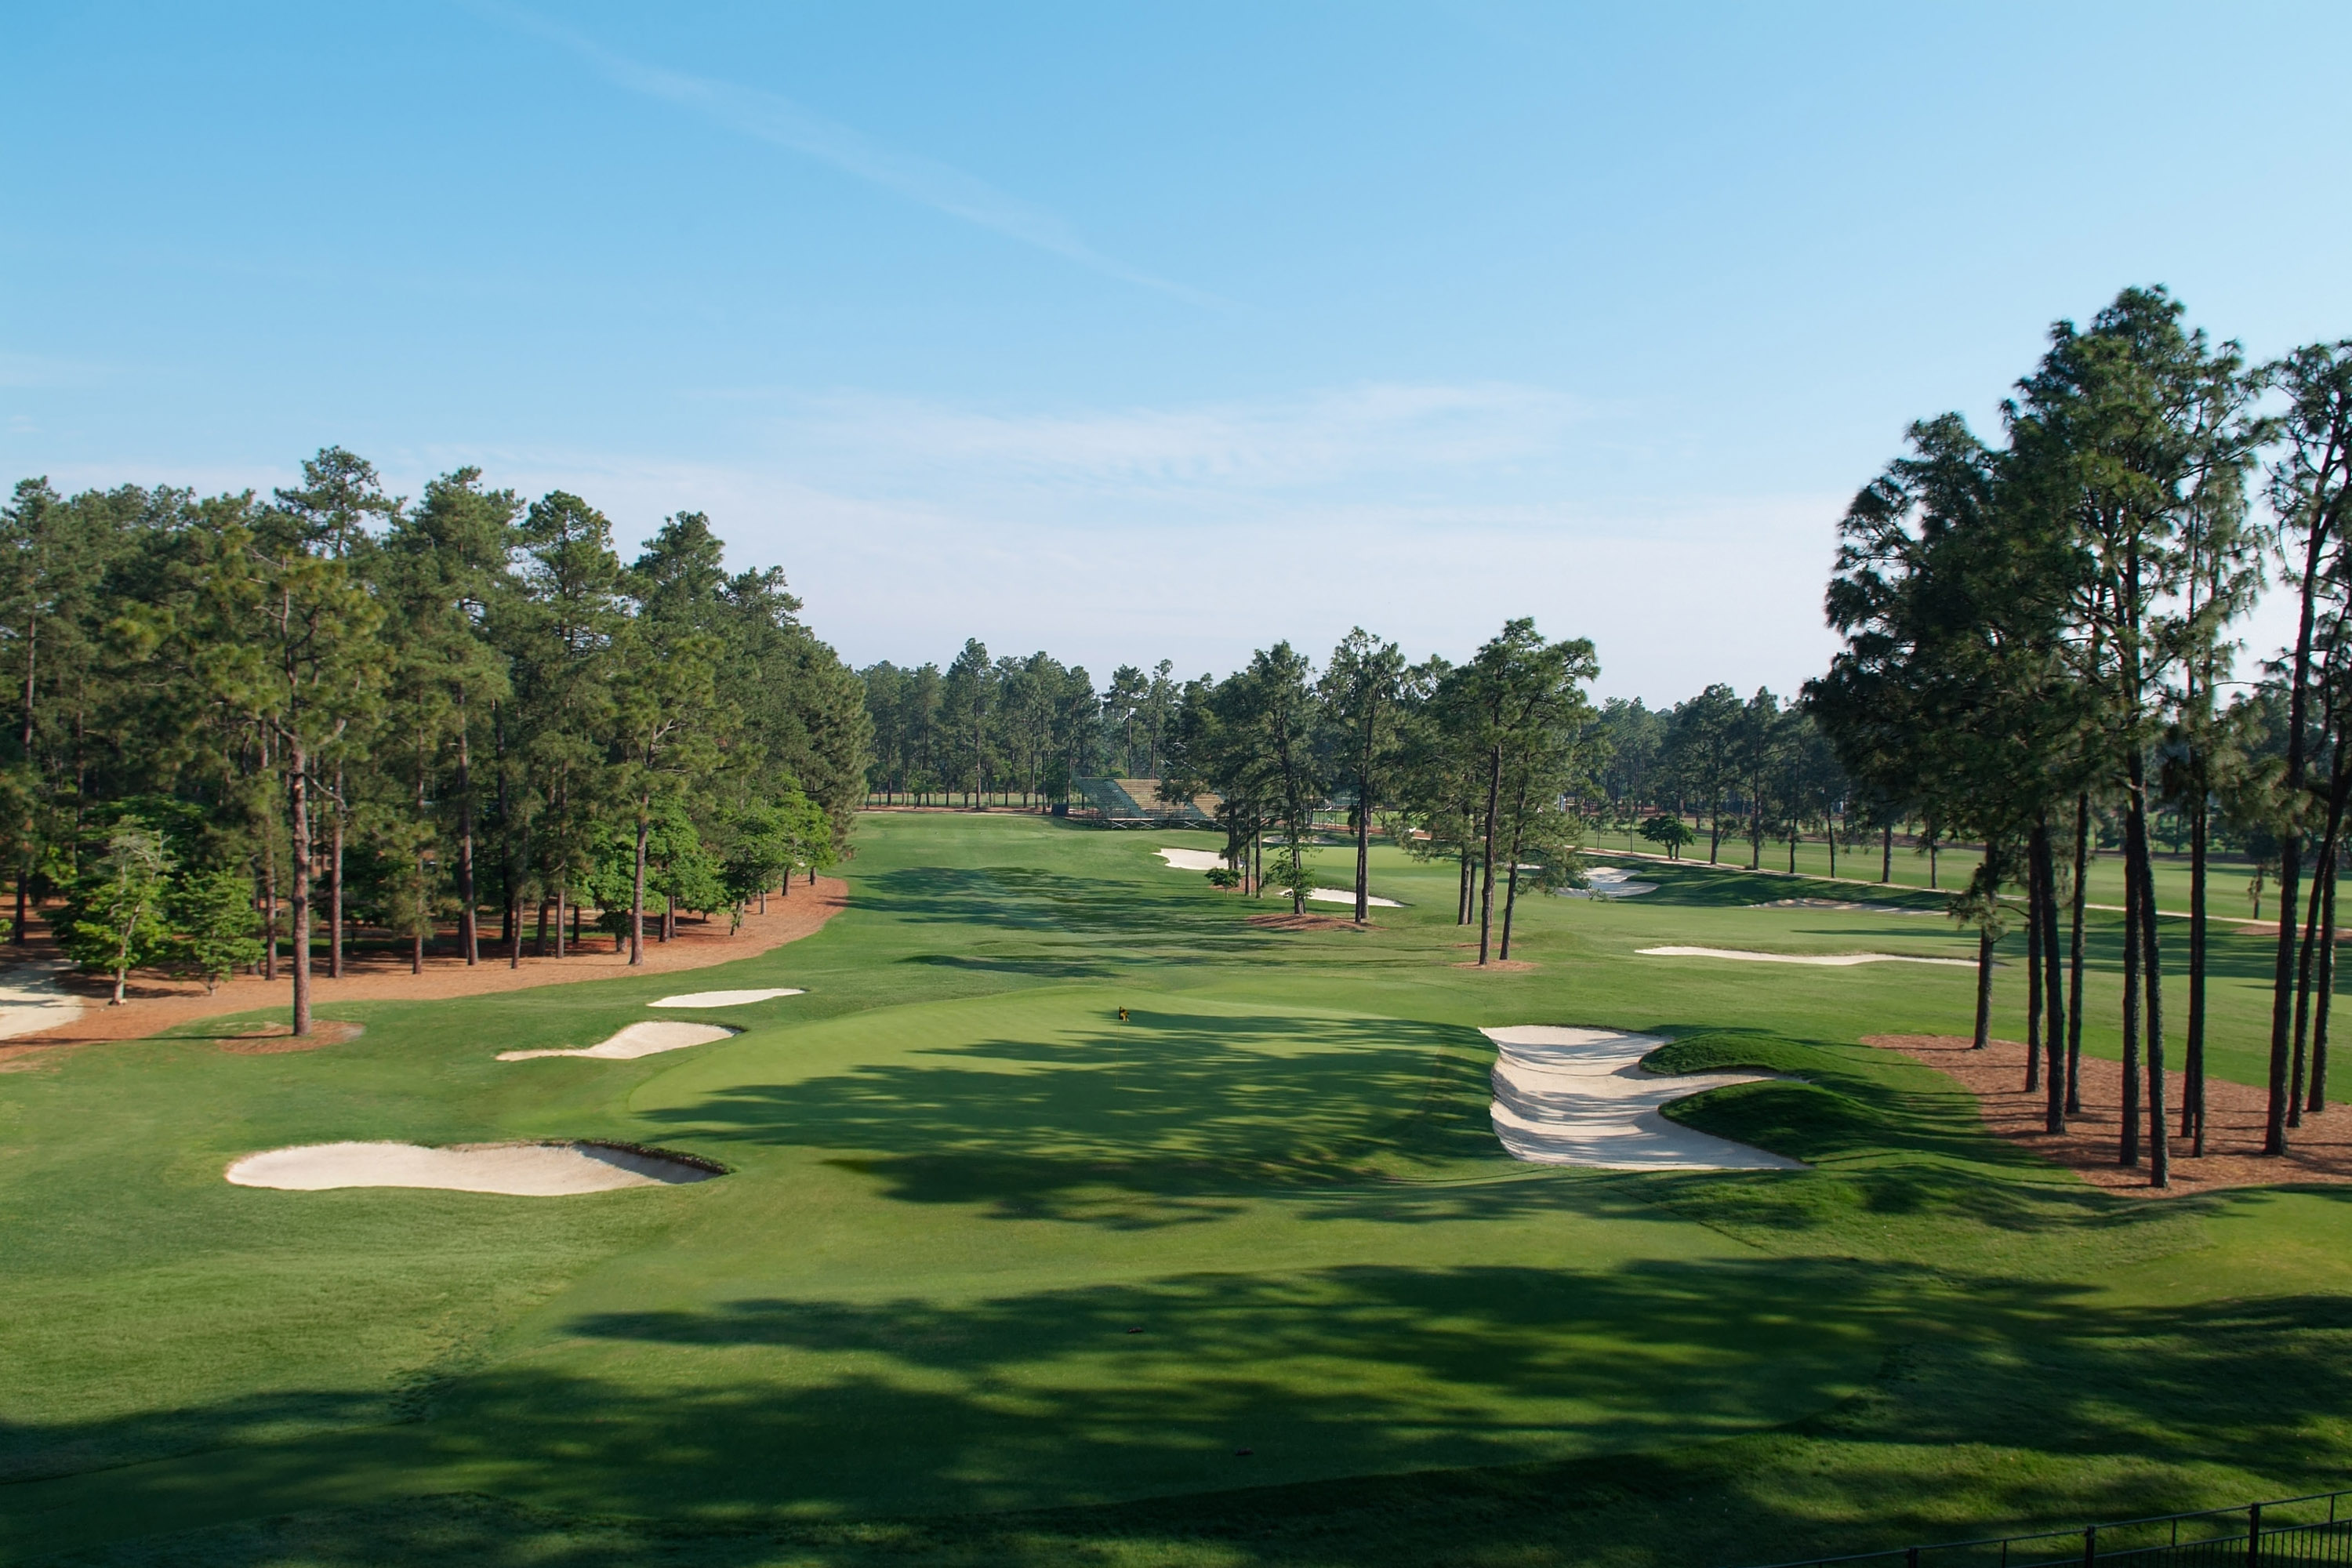 Overview of golf course named Pinehurst No. 2